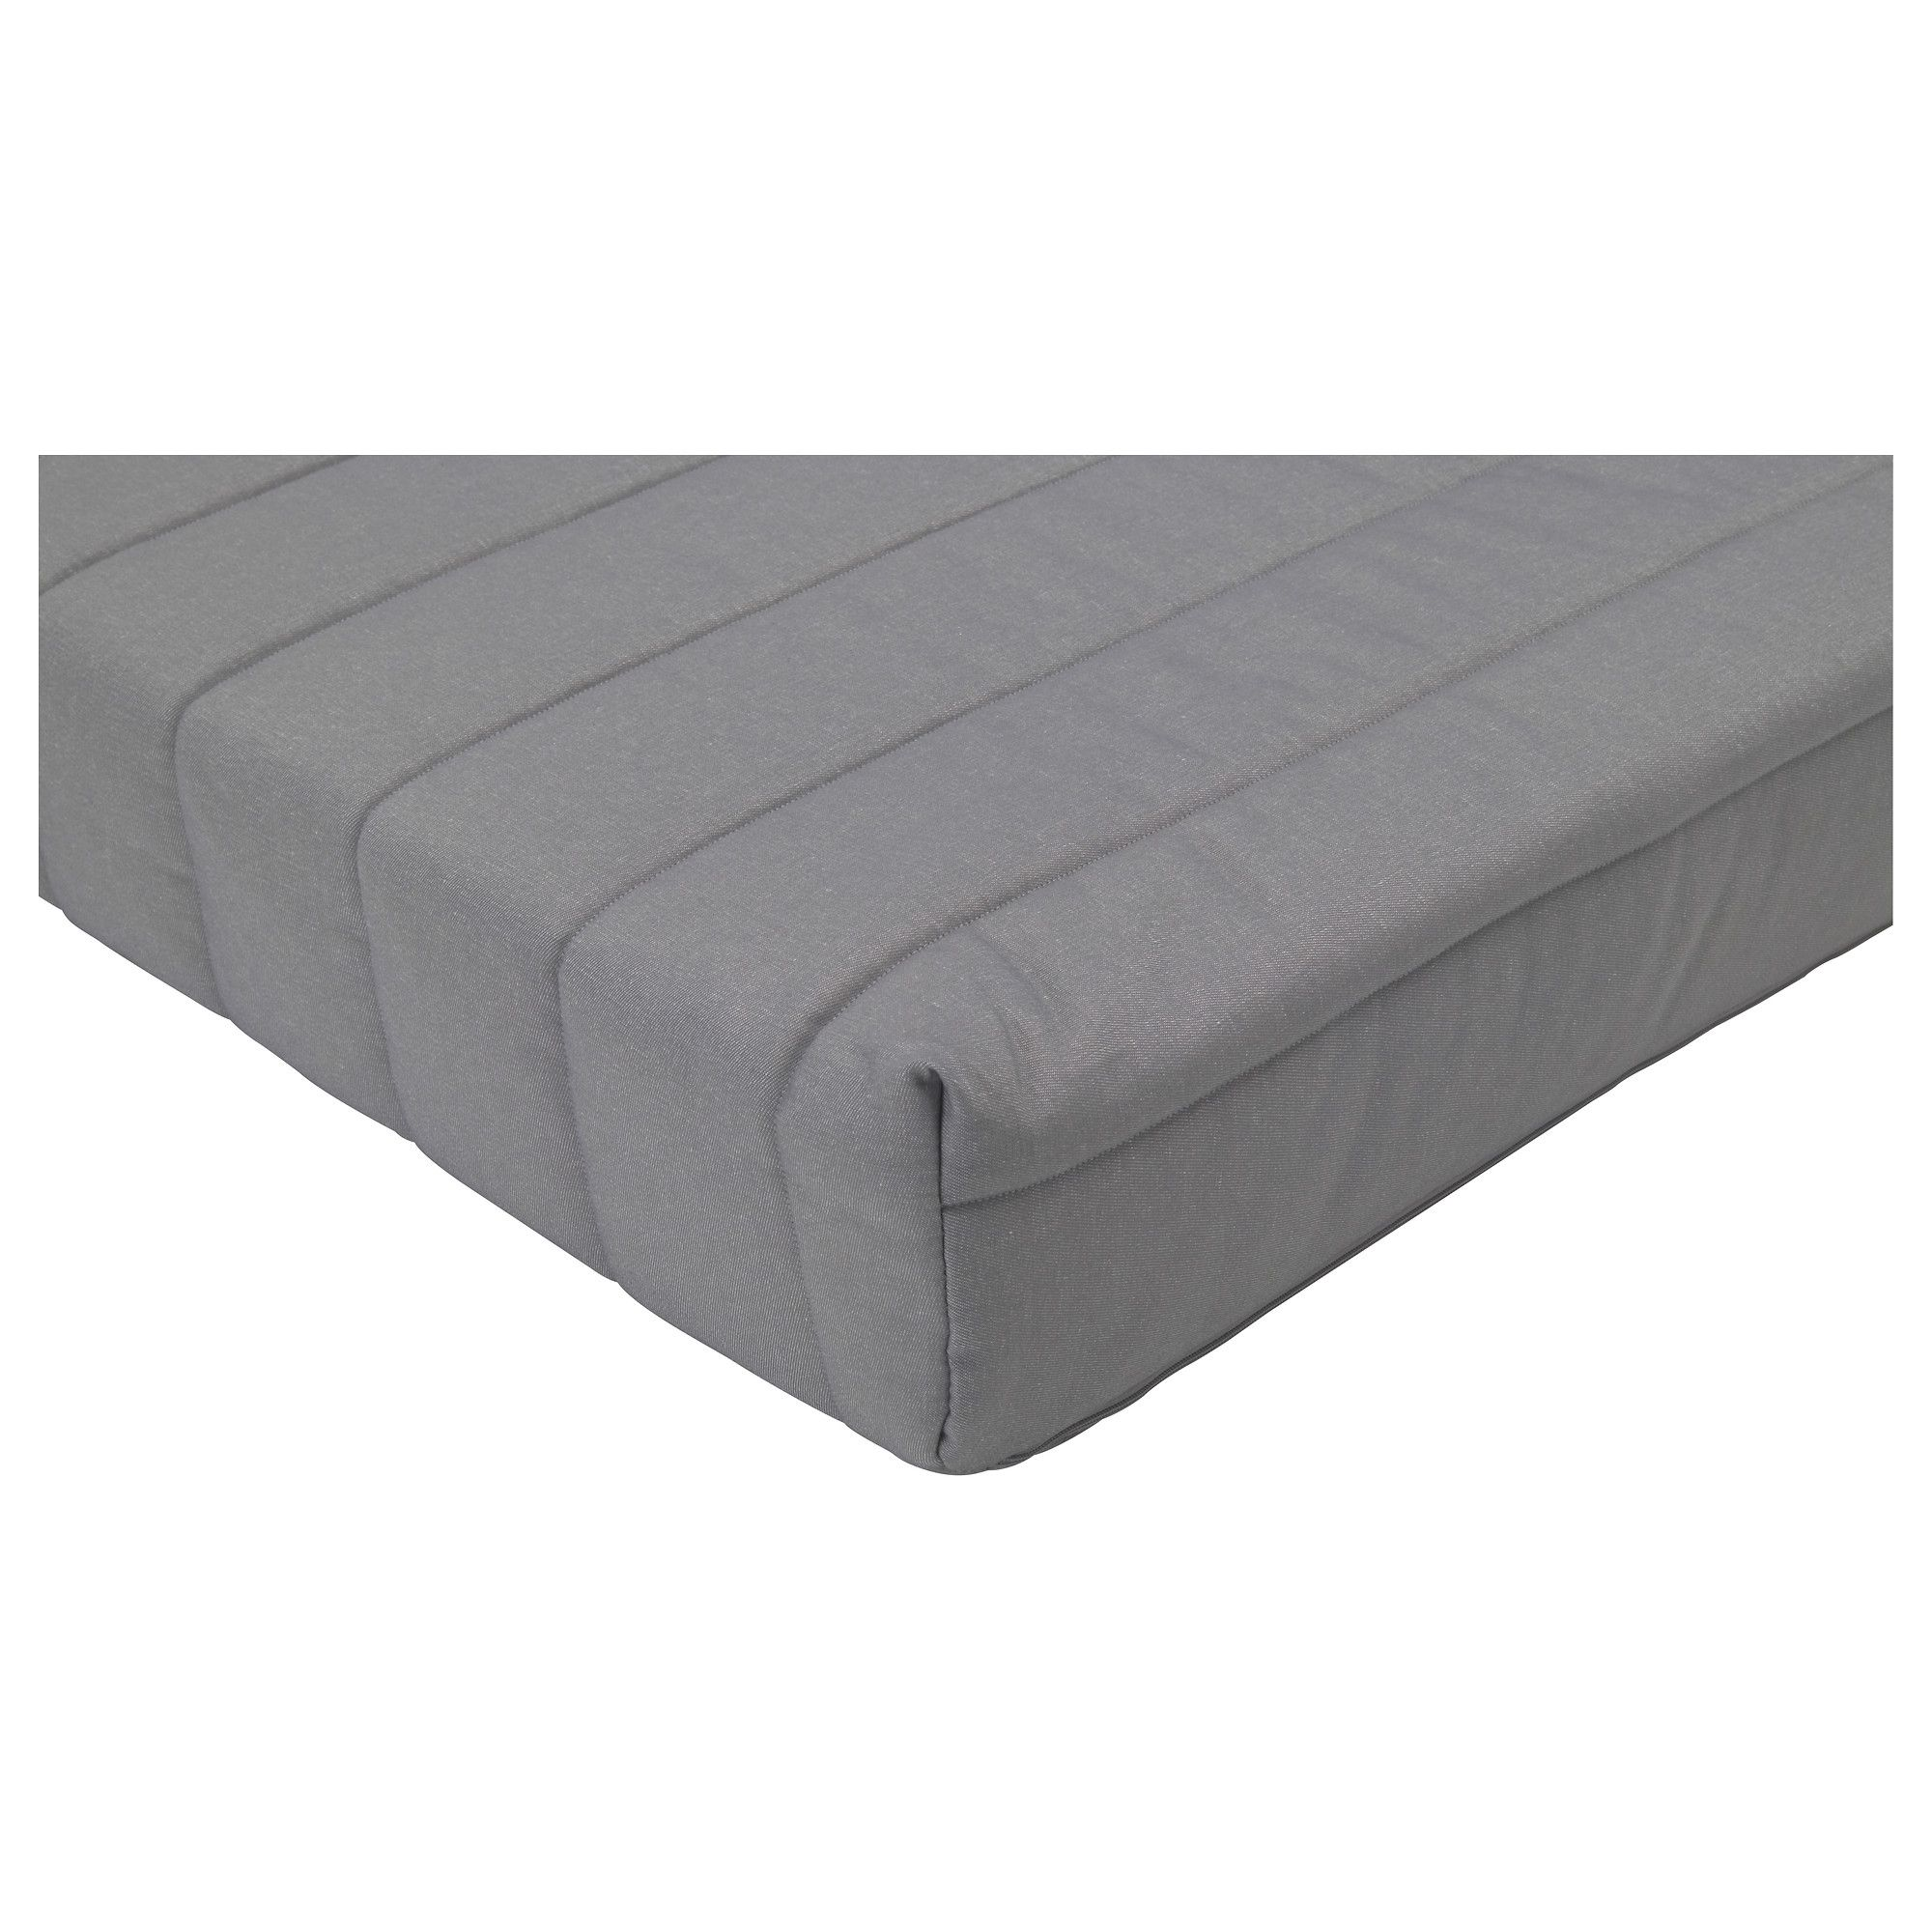 Ikea Bettsessel Lövas Beddinge LÖvÅs Mattress Ikea Ikea Sofa Bed Mattress